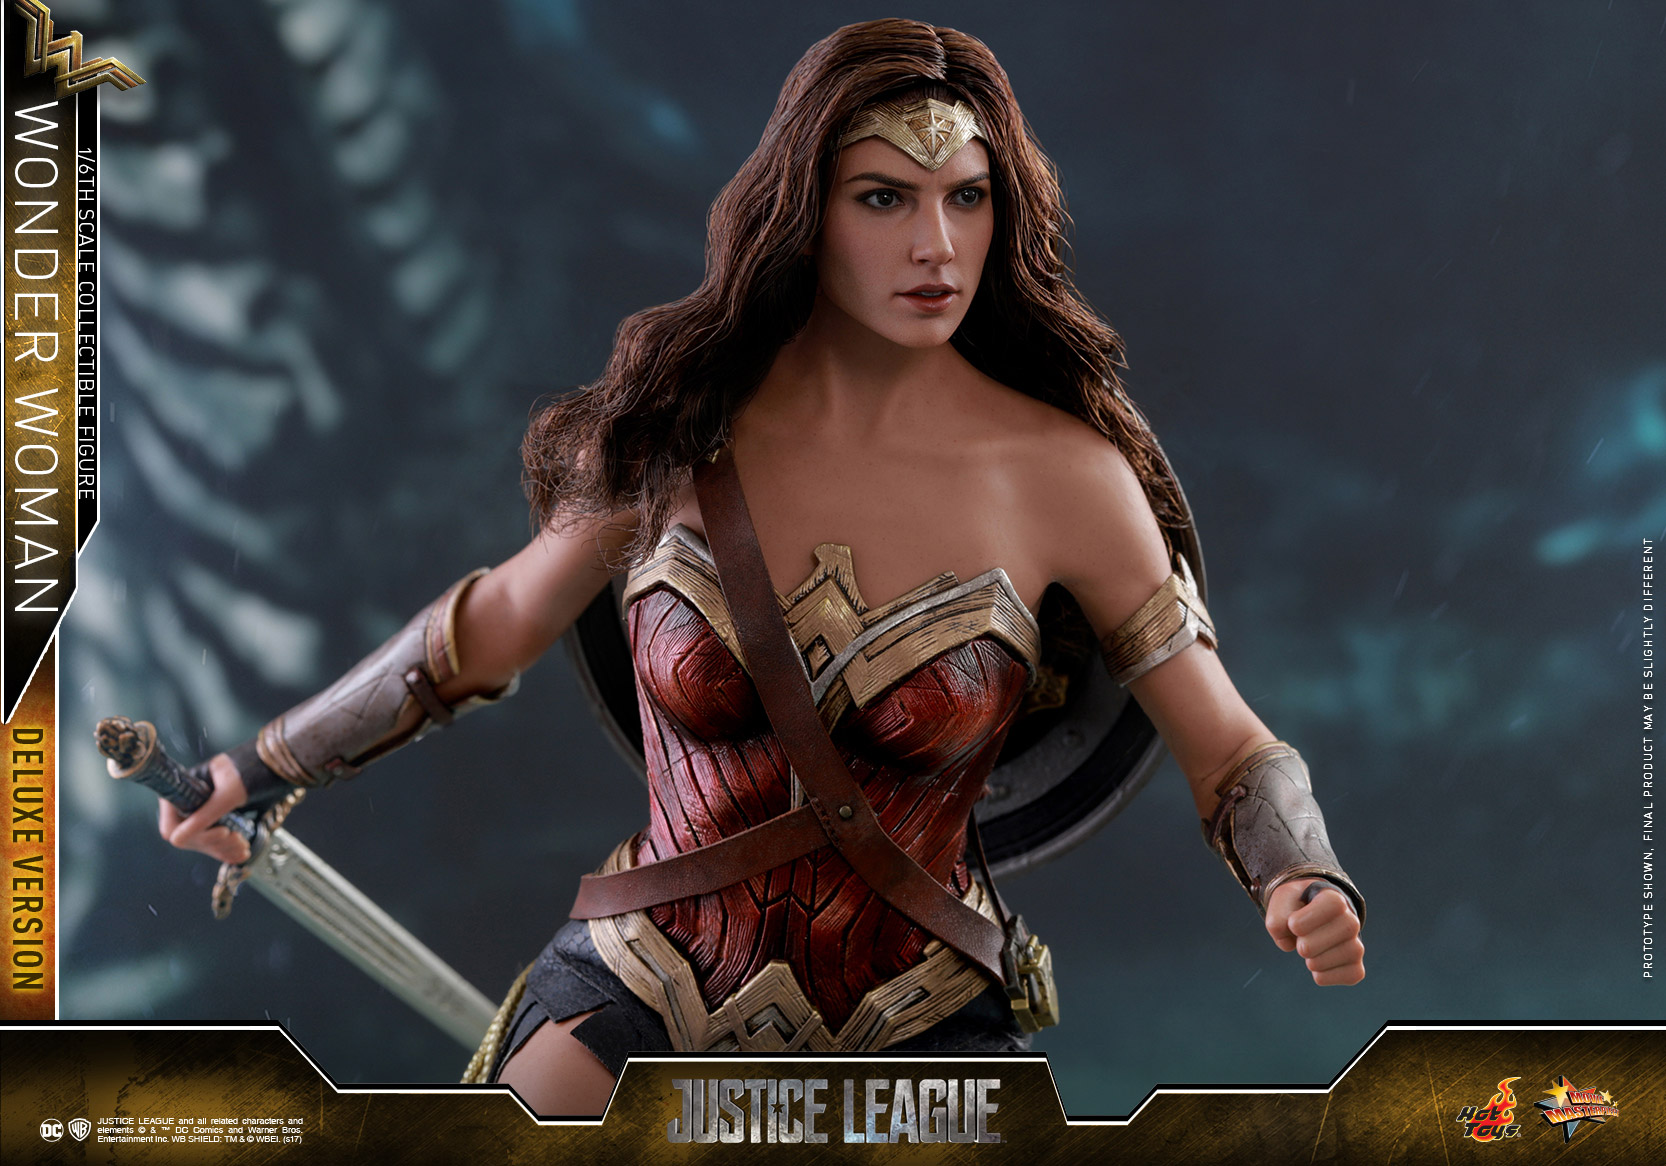 Hot-Toys-Justice-League-Wonder-Woman-collectible-figure-Deluxe_PR-19.jpg